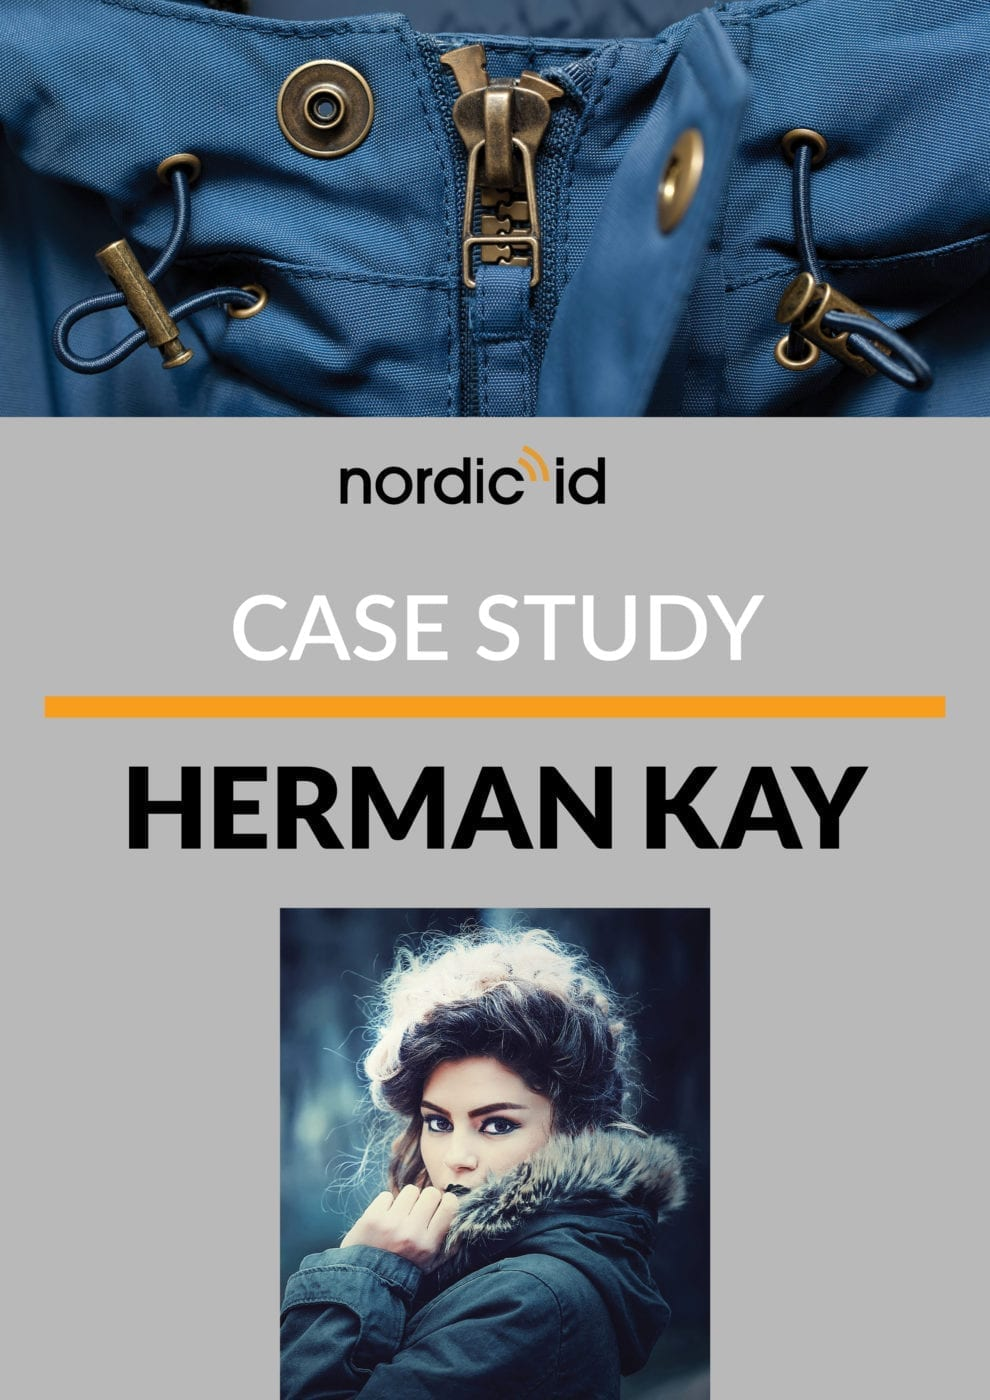 herman kay case study rfid for accuracy and visibility